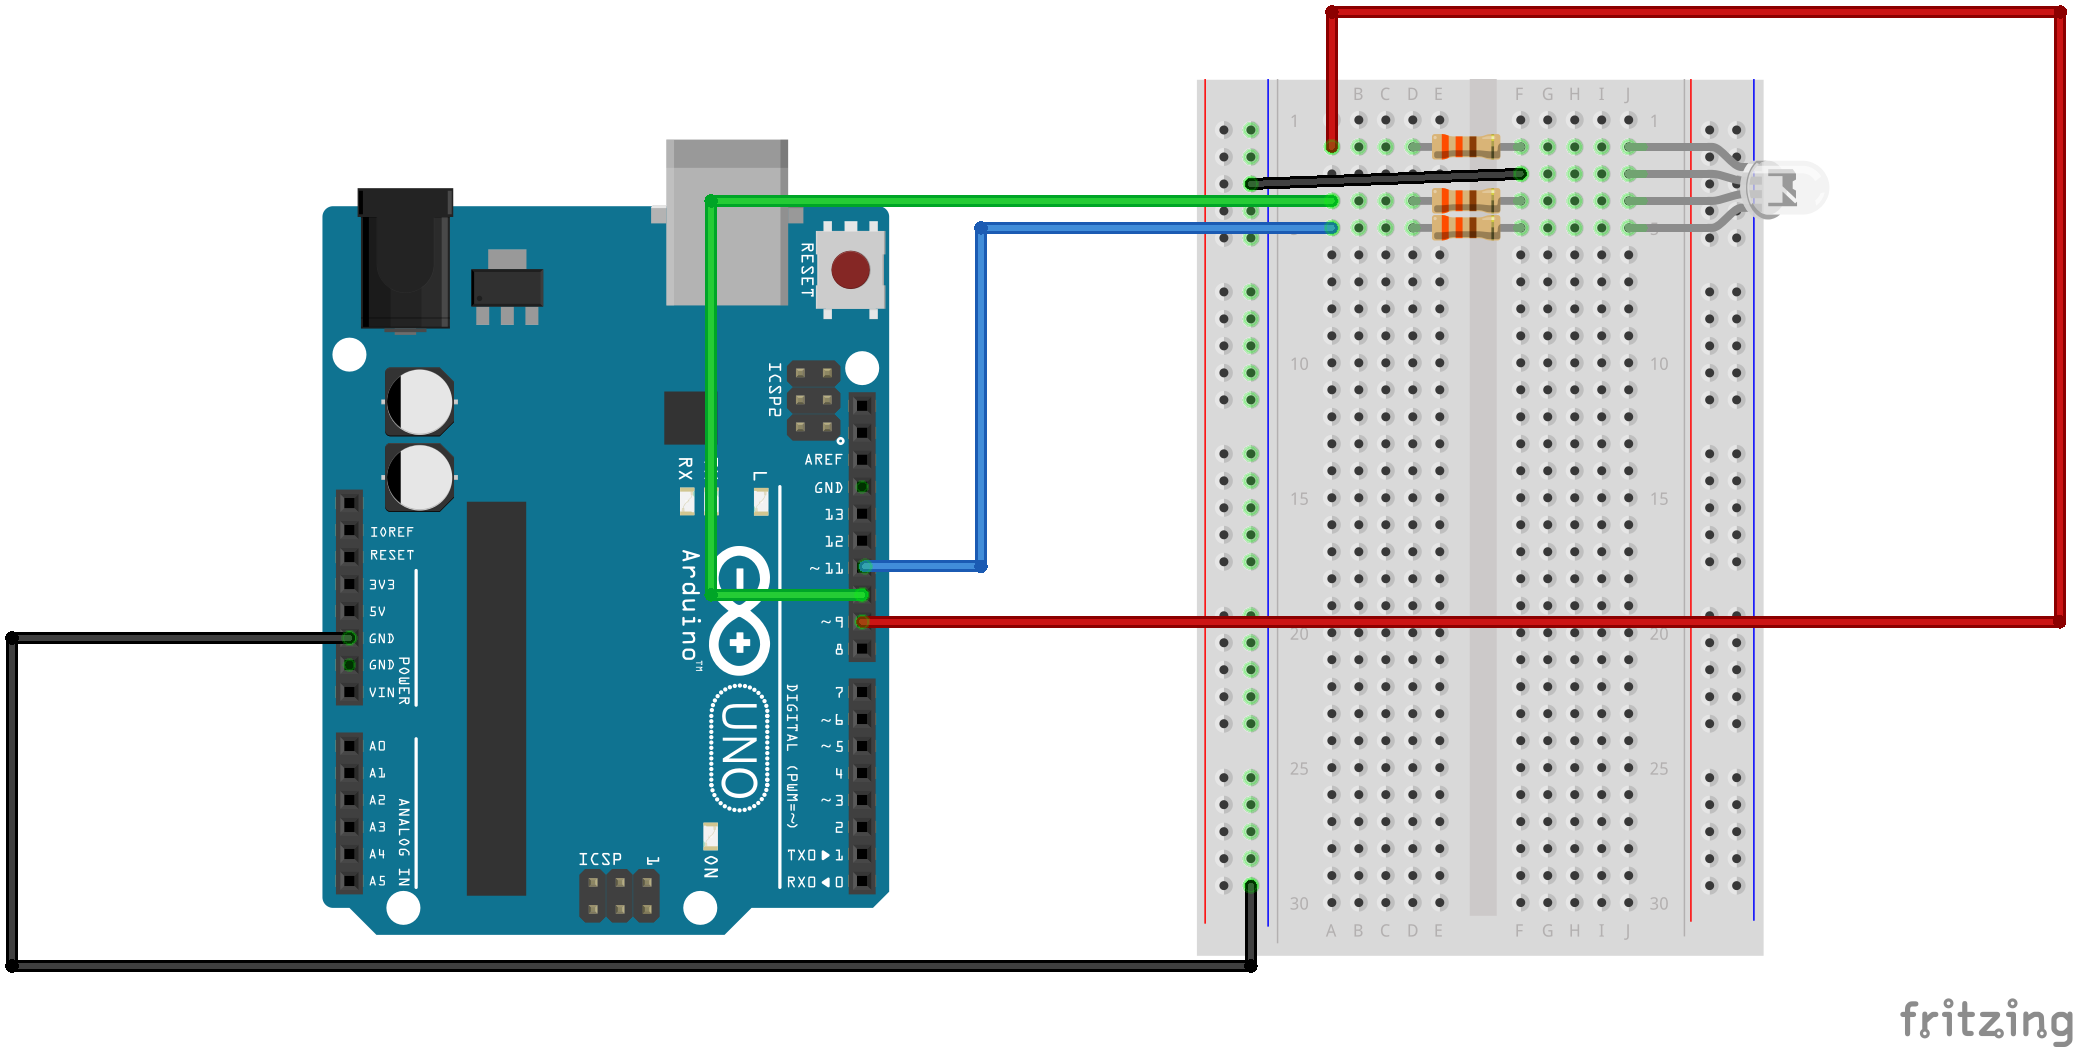 Sik Experiment Guide For Arduino V32 Is A Simple Flashing Led Circuit Operating On The Breadboard Fritzing Diagram Alt Text